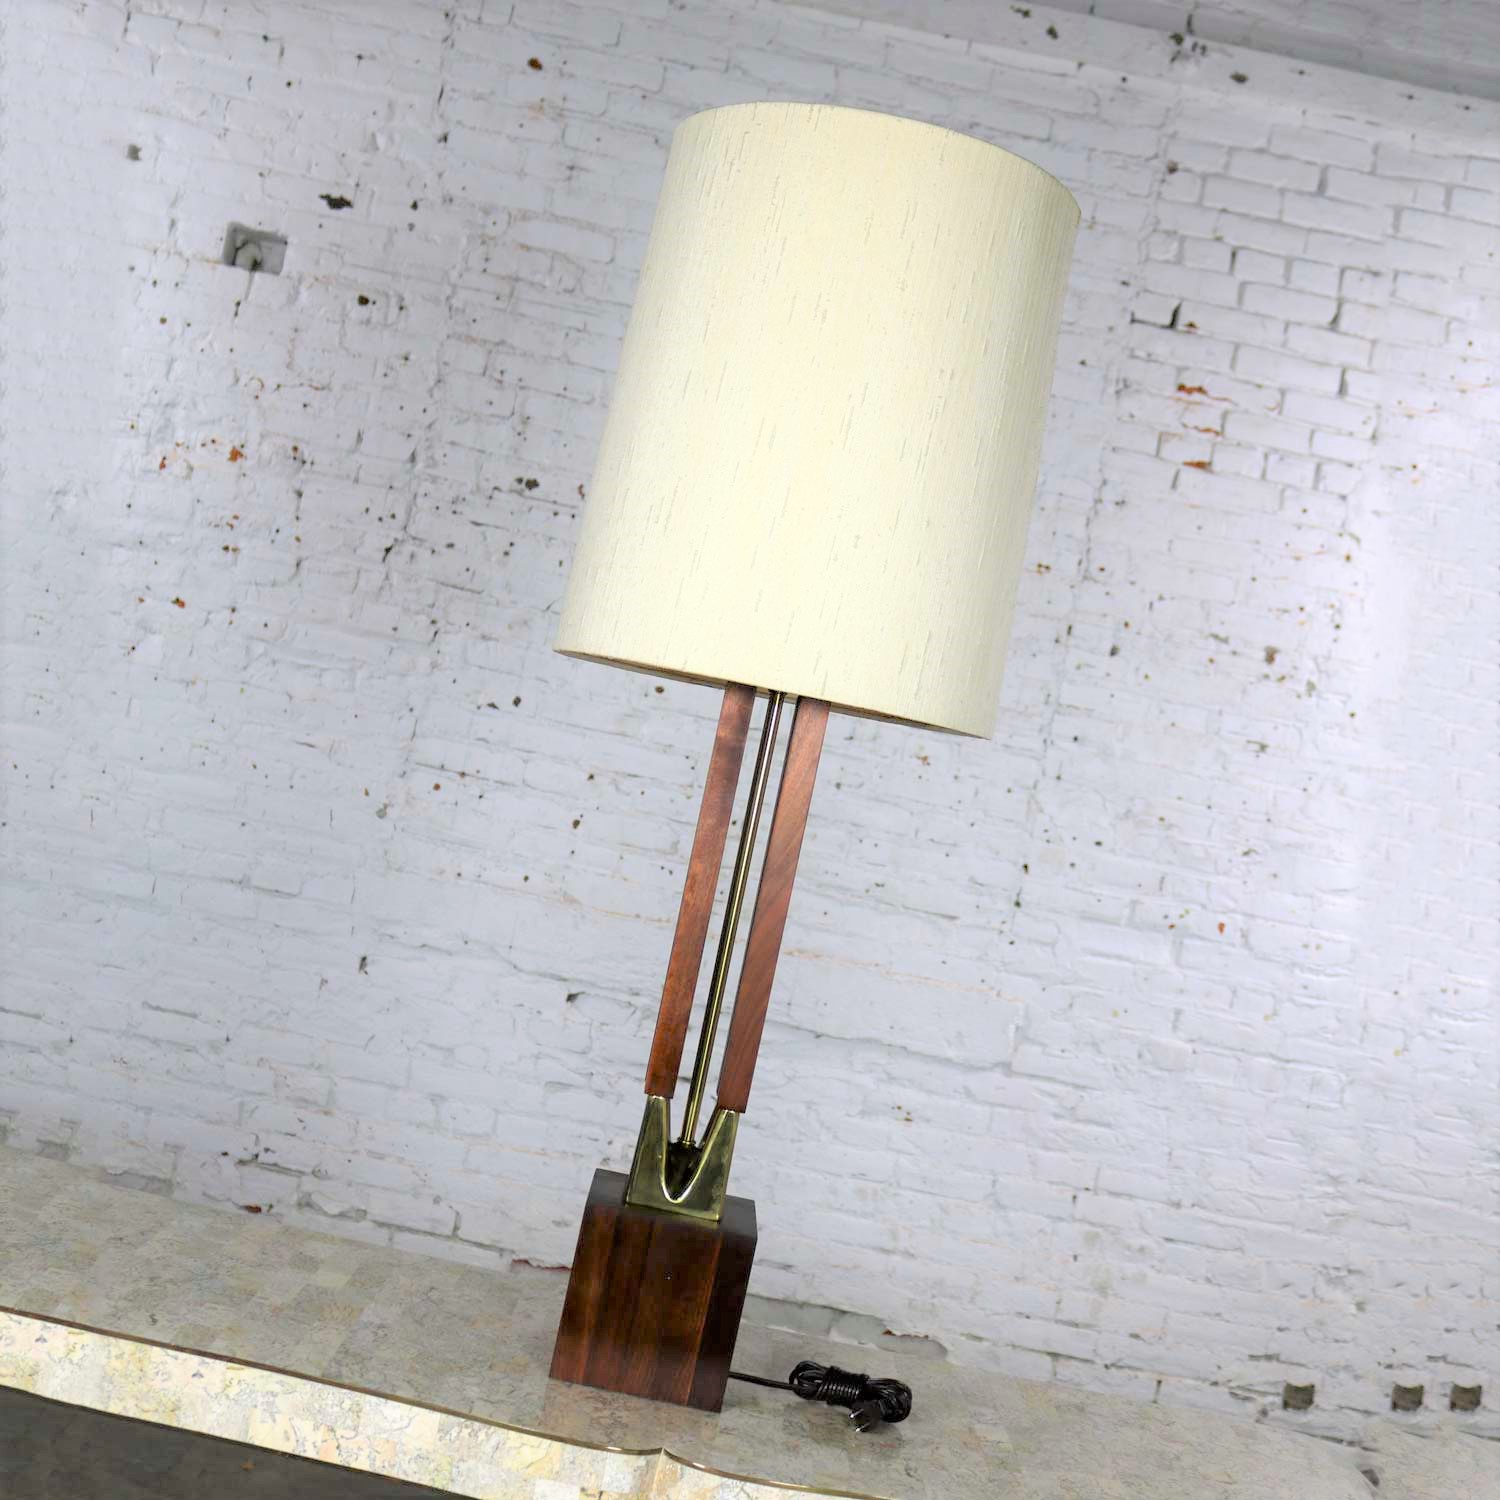 39a45d52848f9 Mid Century Modern Large Scale Walnut and Brass Lamp Attributed to Laurel  Lamp Mfg.